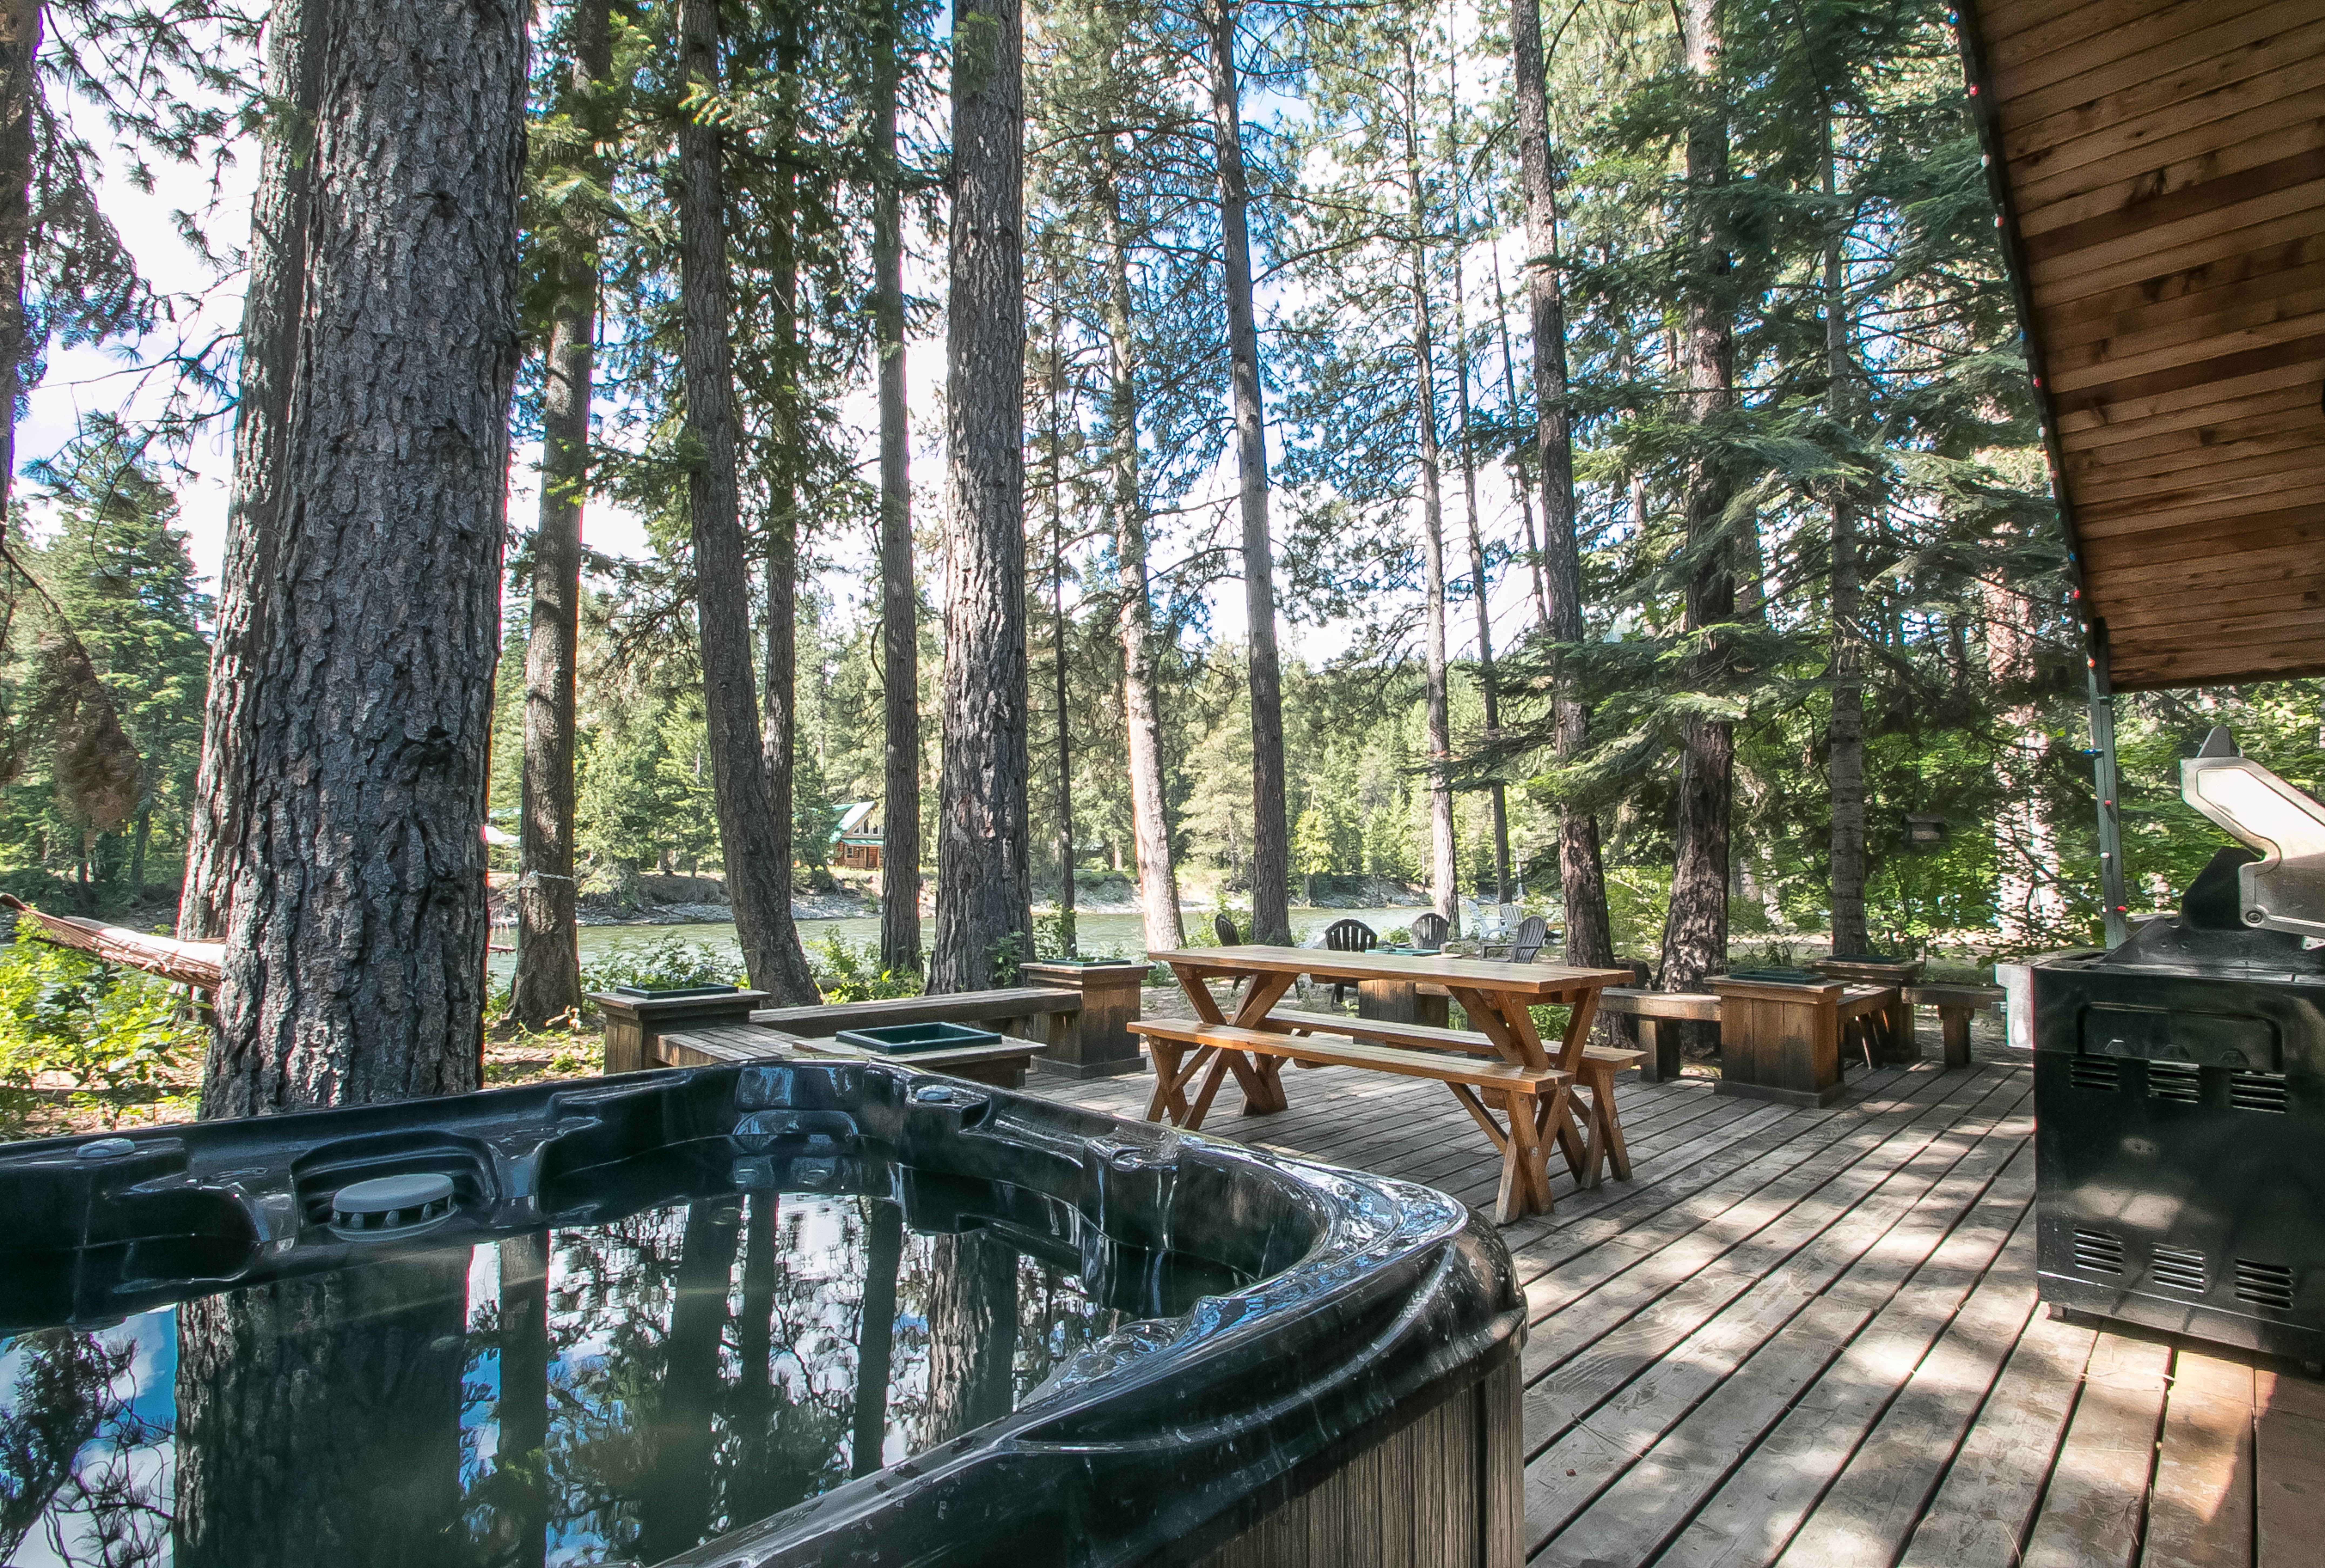 private s luxury forestville groups pacificwest cabins to cabin me rental unitedstatesofamerica pool rent near rosa california dual large santa for with